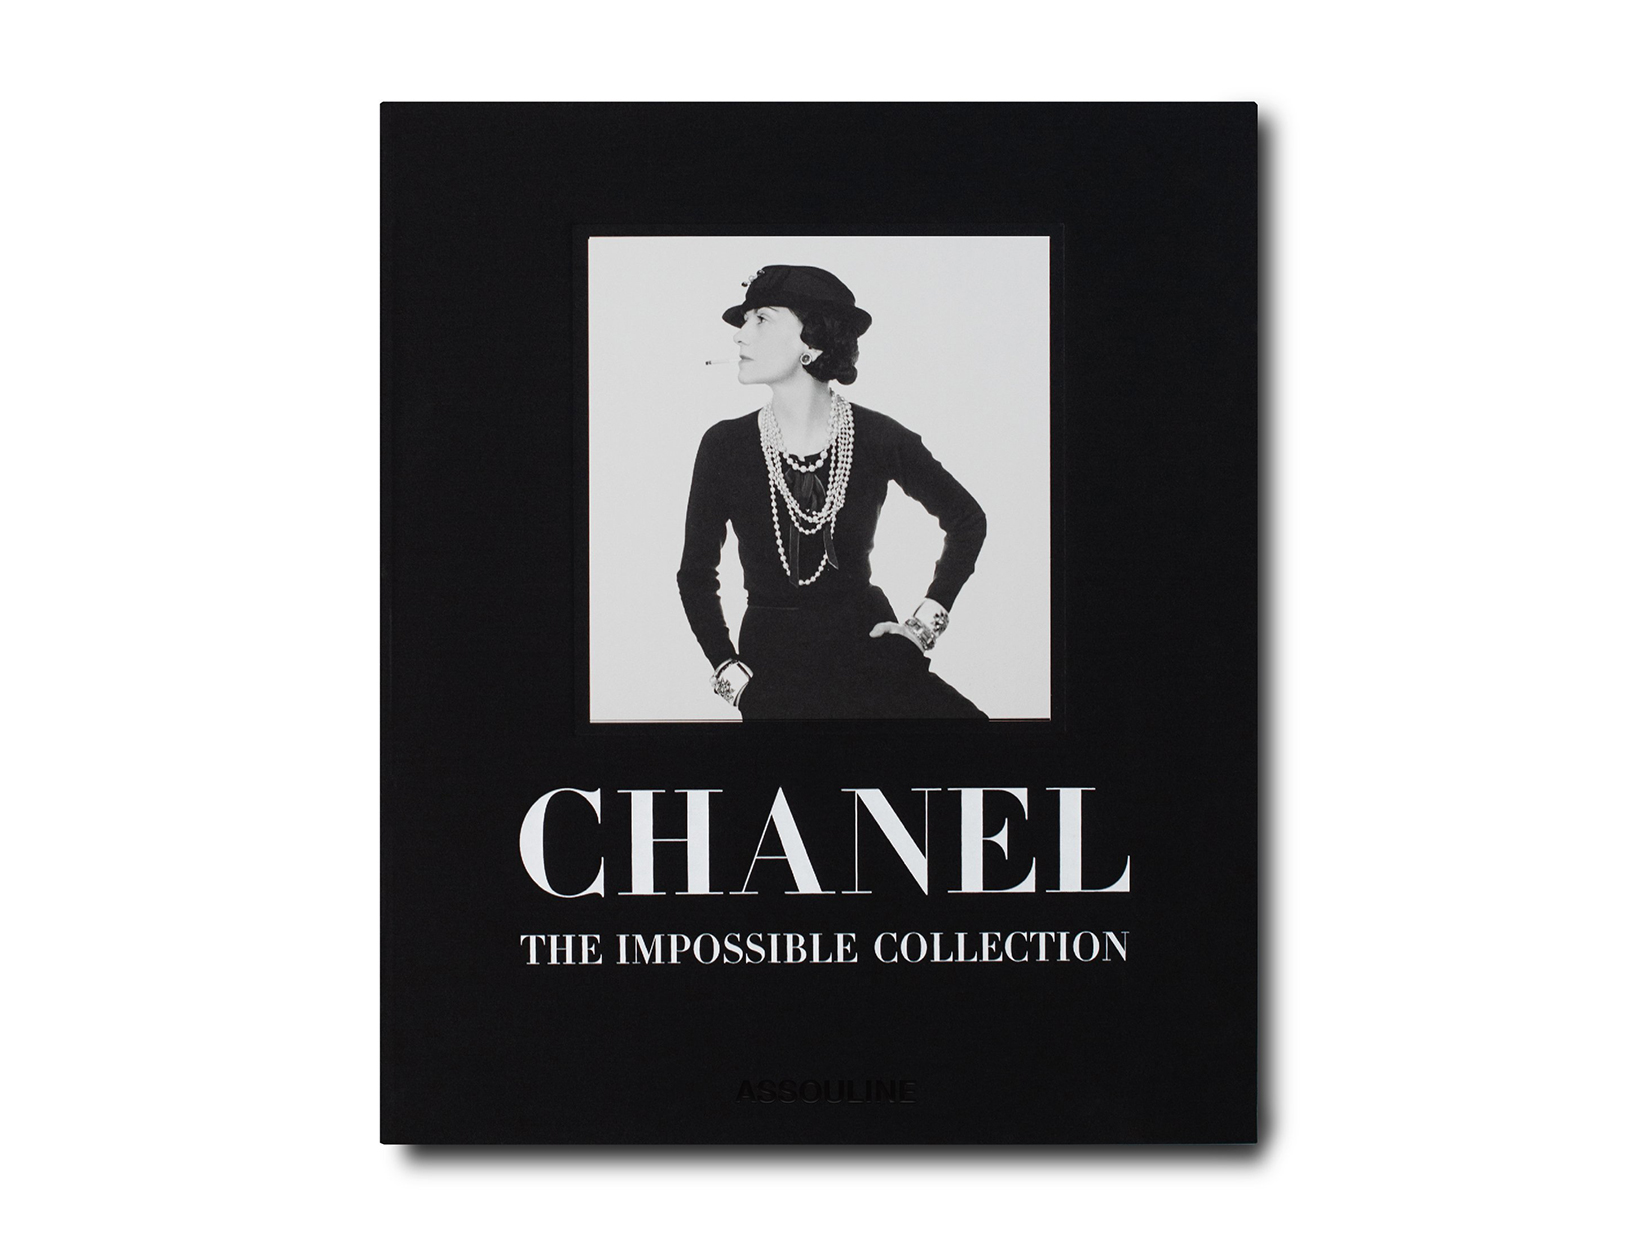 <em>Chanel</em> by Alexander Fury